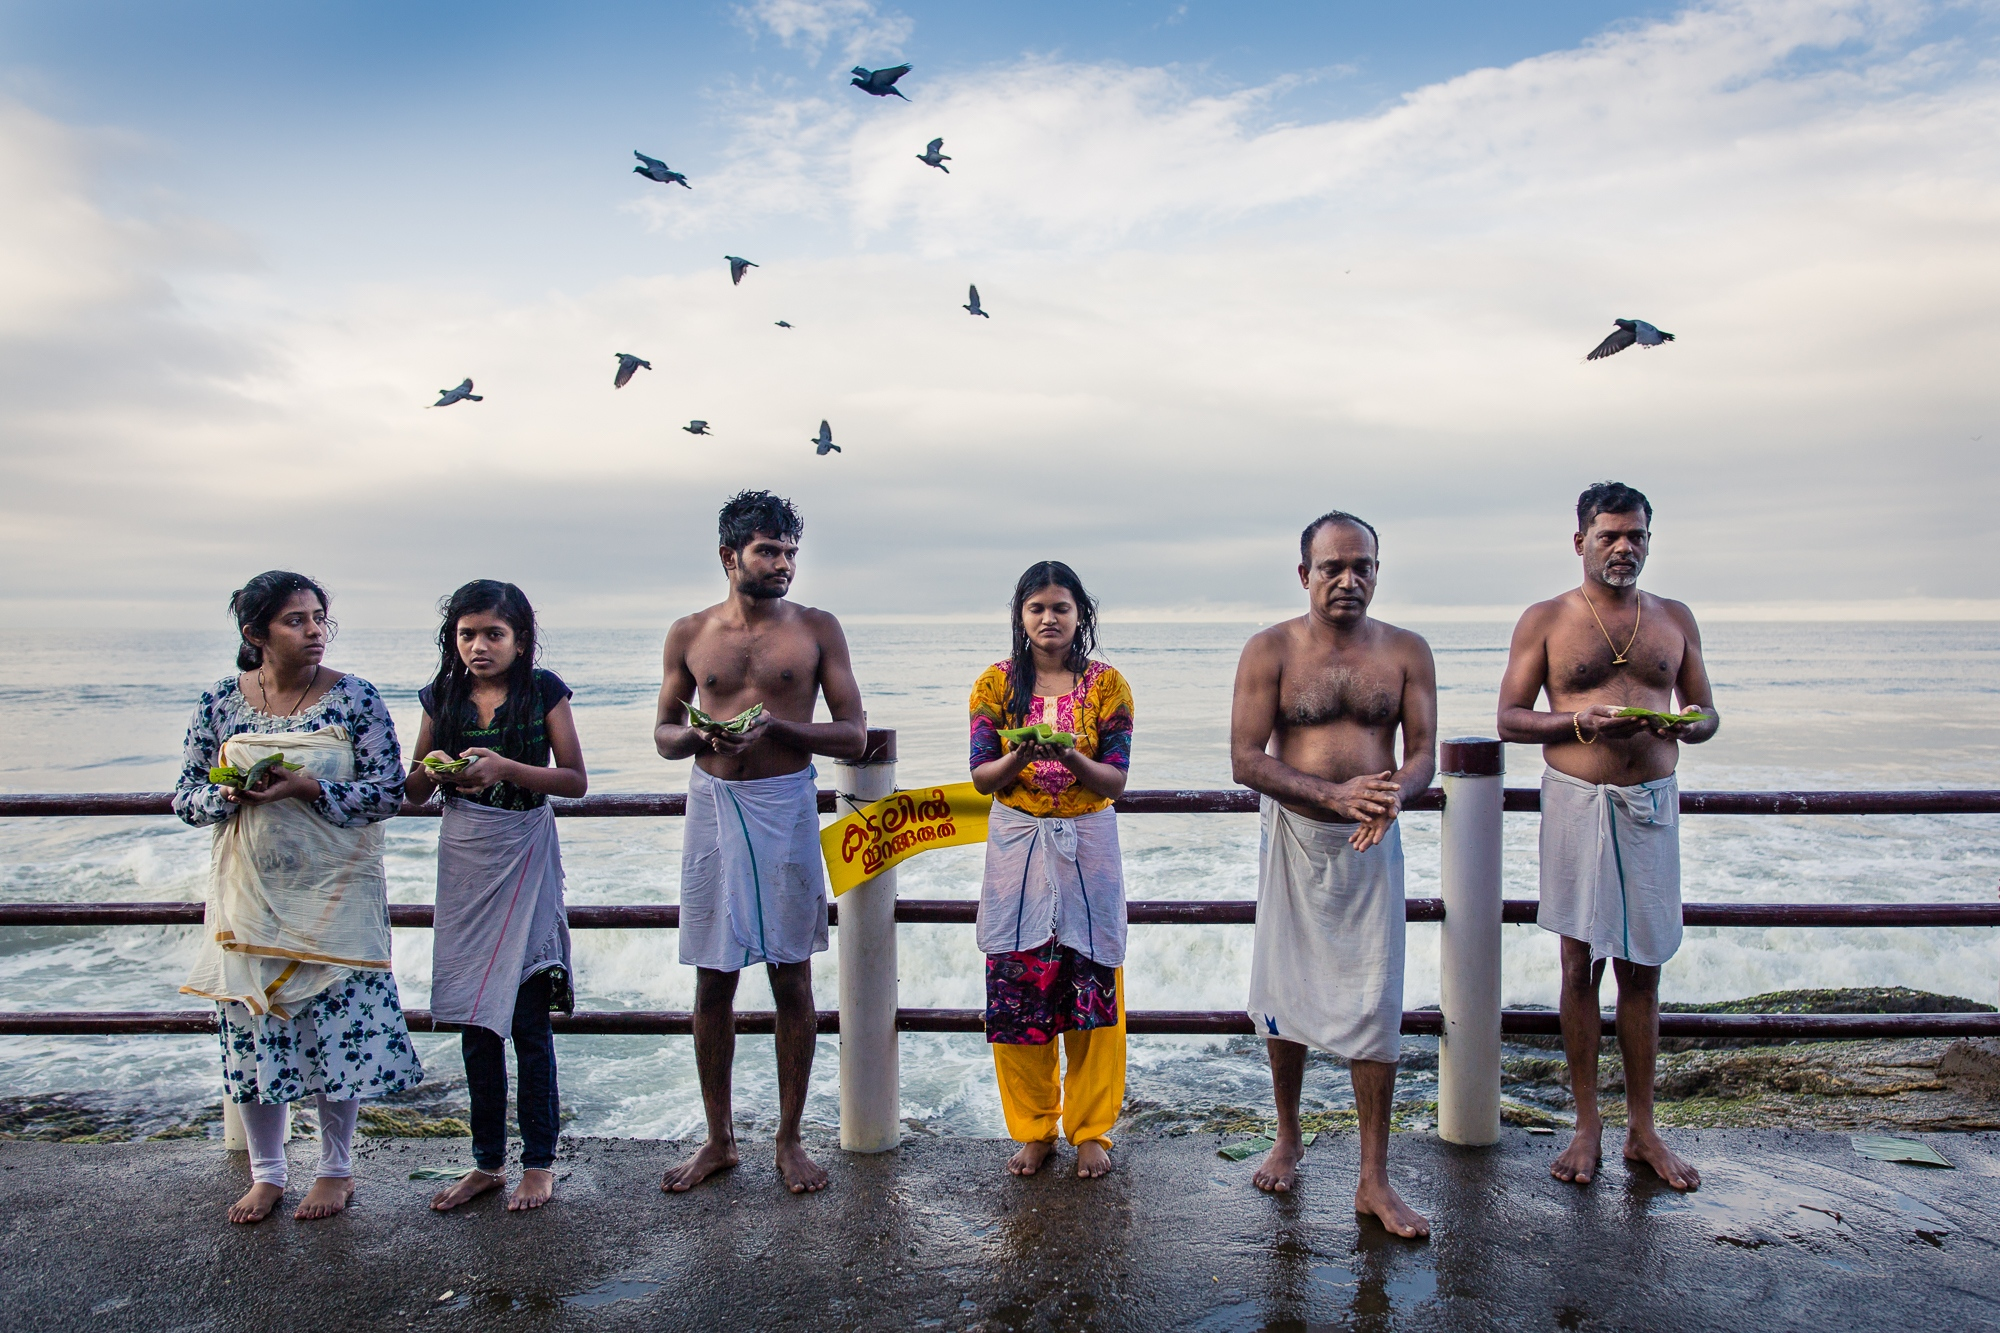 Nandi, Kerala, INDIA - September 12, 2017: Meenakshi's grandchildren (FL) Ninu, 32, Lena, 14, Milind, 21, Jaimi, 23, and her sons Sajeev, 53, and Pradeep, 52, perform the Hindu Śrāddha ritual in honor of Meenakshi's late husband, Raghavan. (Tradition forbids the wife to attend to this ritual). Raghavan was Meenakshi's martial arts master. When he passed away in 2010, she took over his legacy. The entire family continues to practise Kalaripayattu in the temple that Raghavan had built.